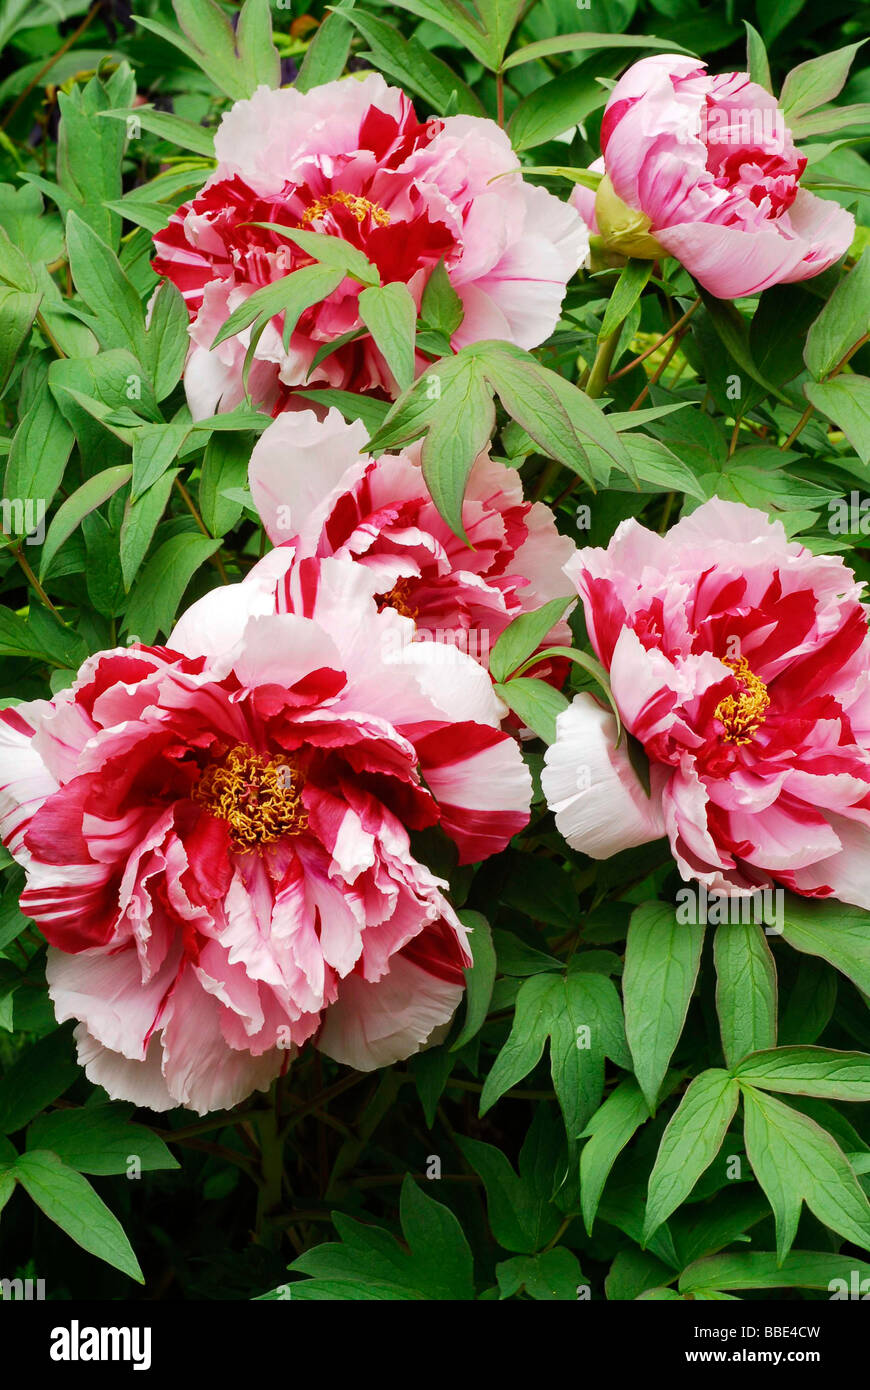 Pink red Peonies (Paeonia) Stock Photo